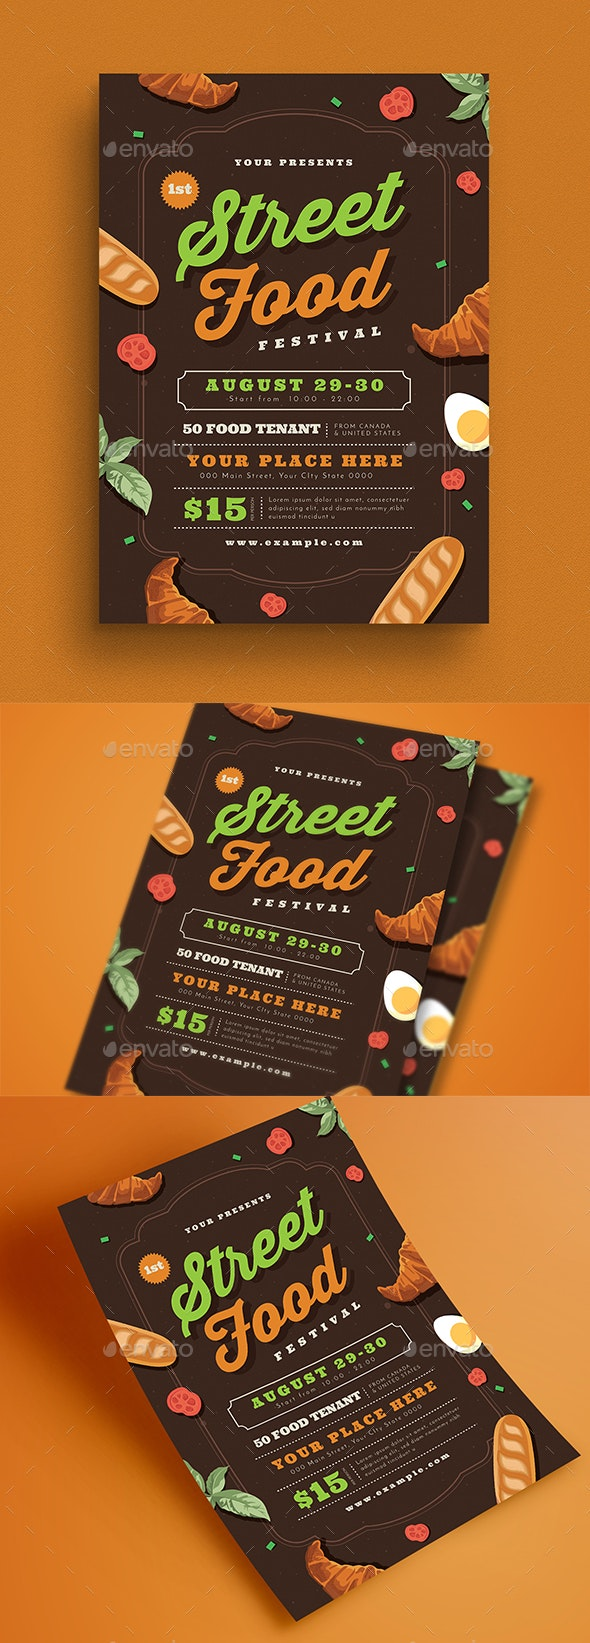 Street Food Event Flyer - Events Flyers